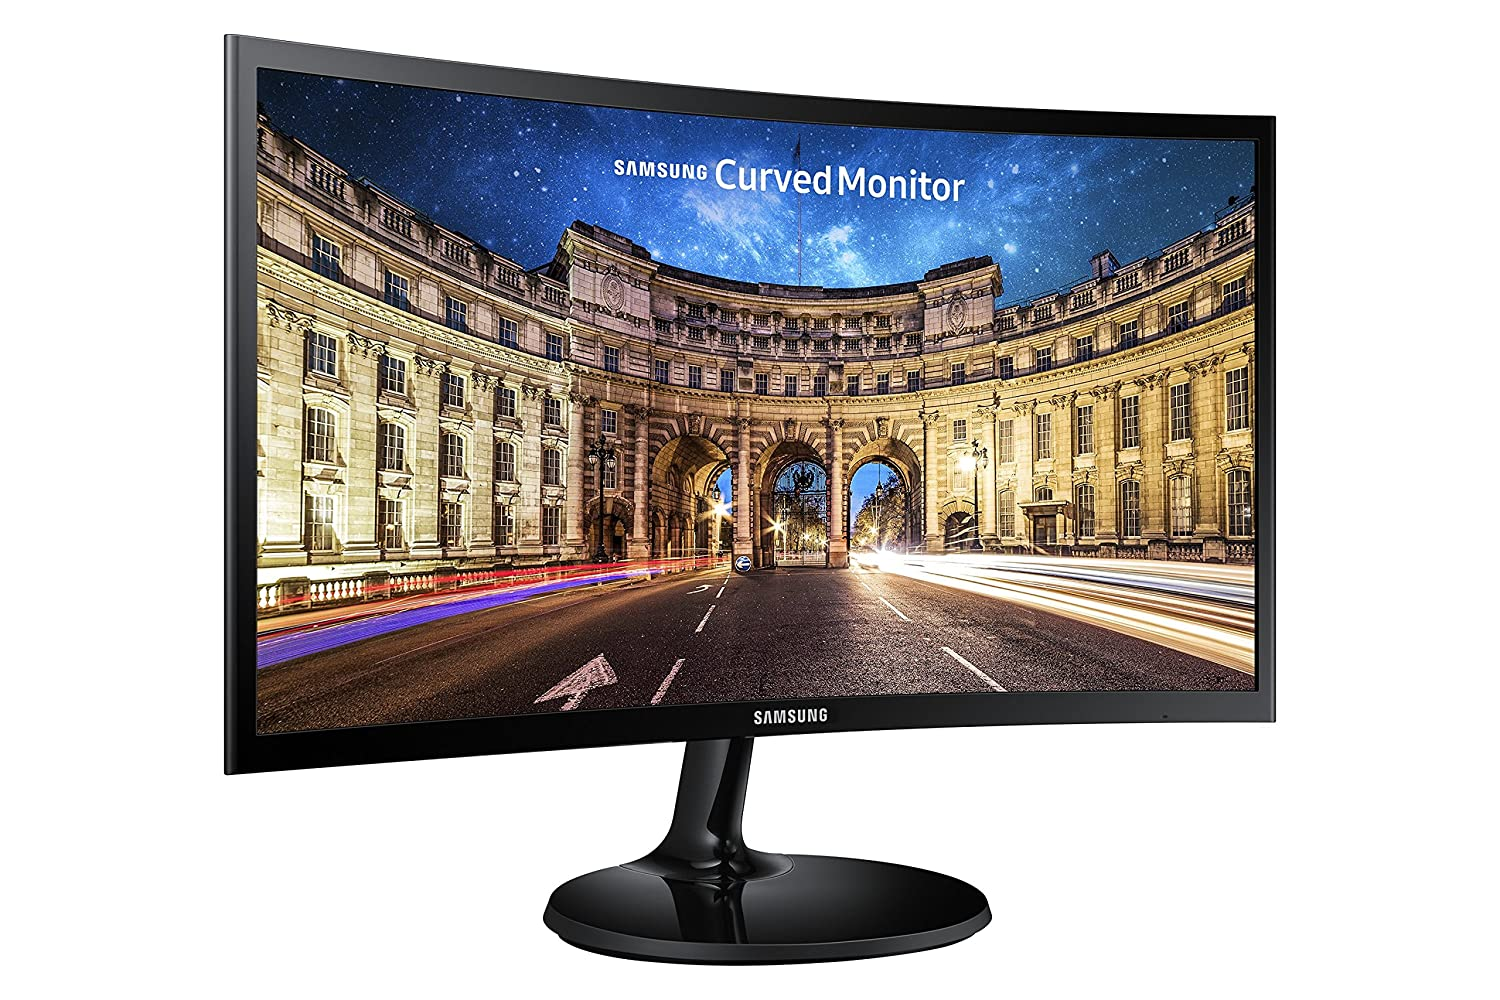 Samsung C24F396FHU - Monitor (24', Full HD, LED, 3000:1), Color Negro LC24F396FHUXEN